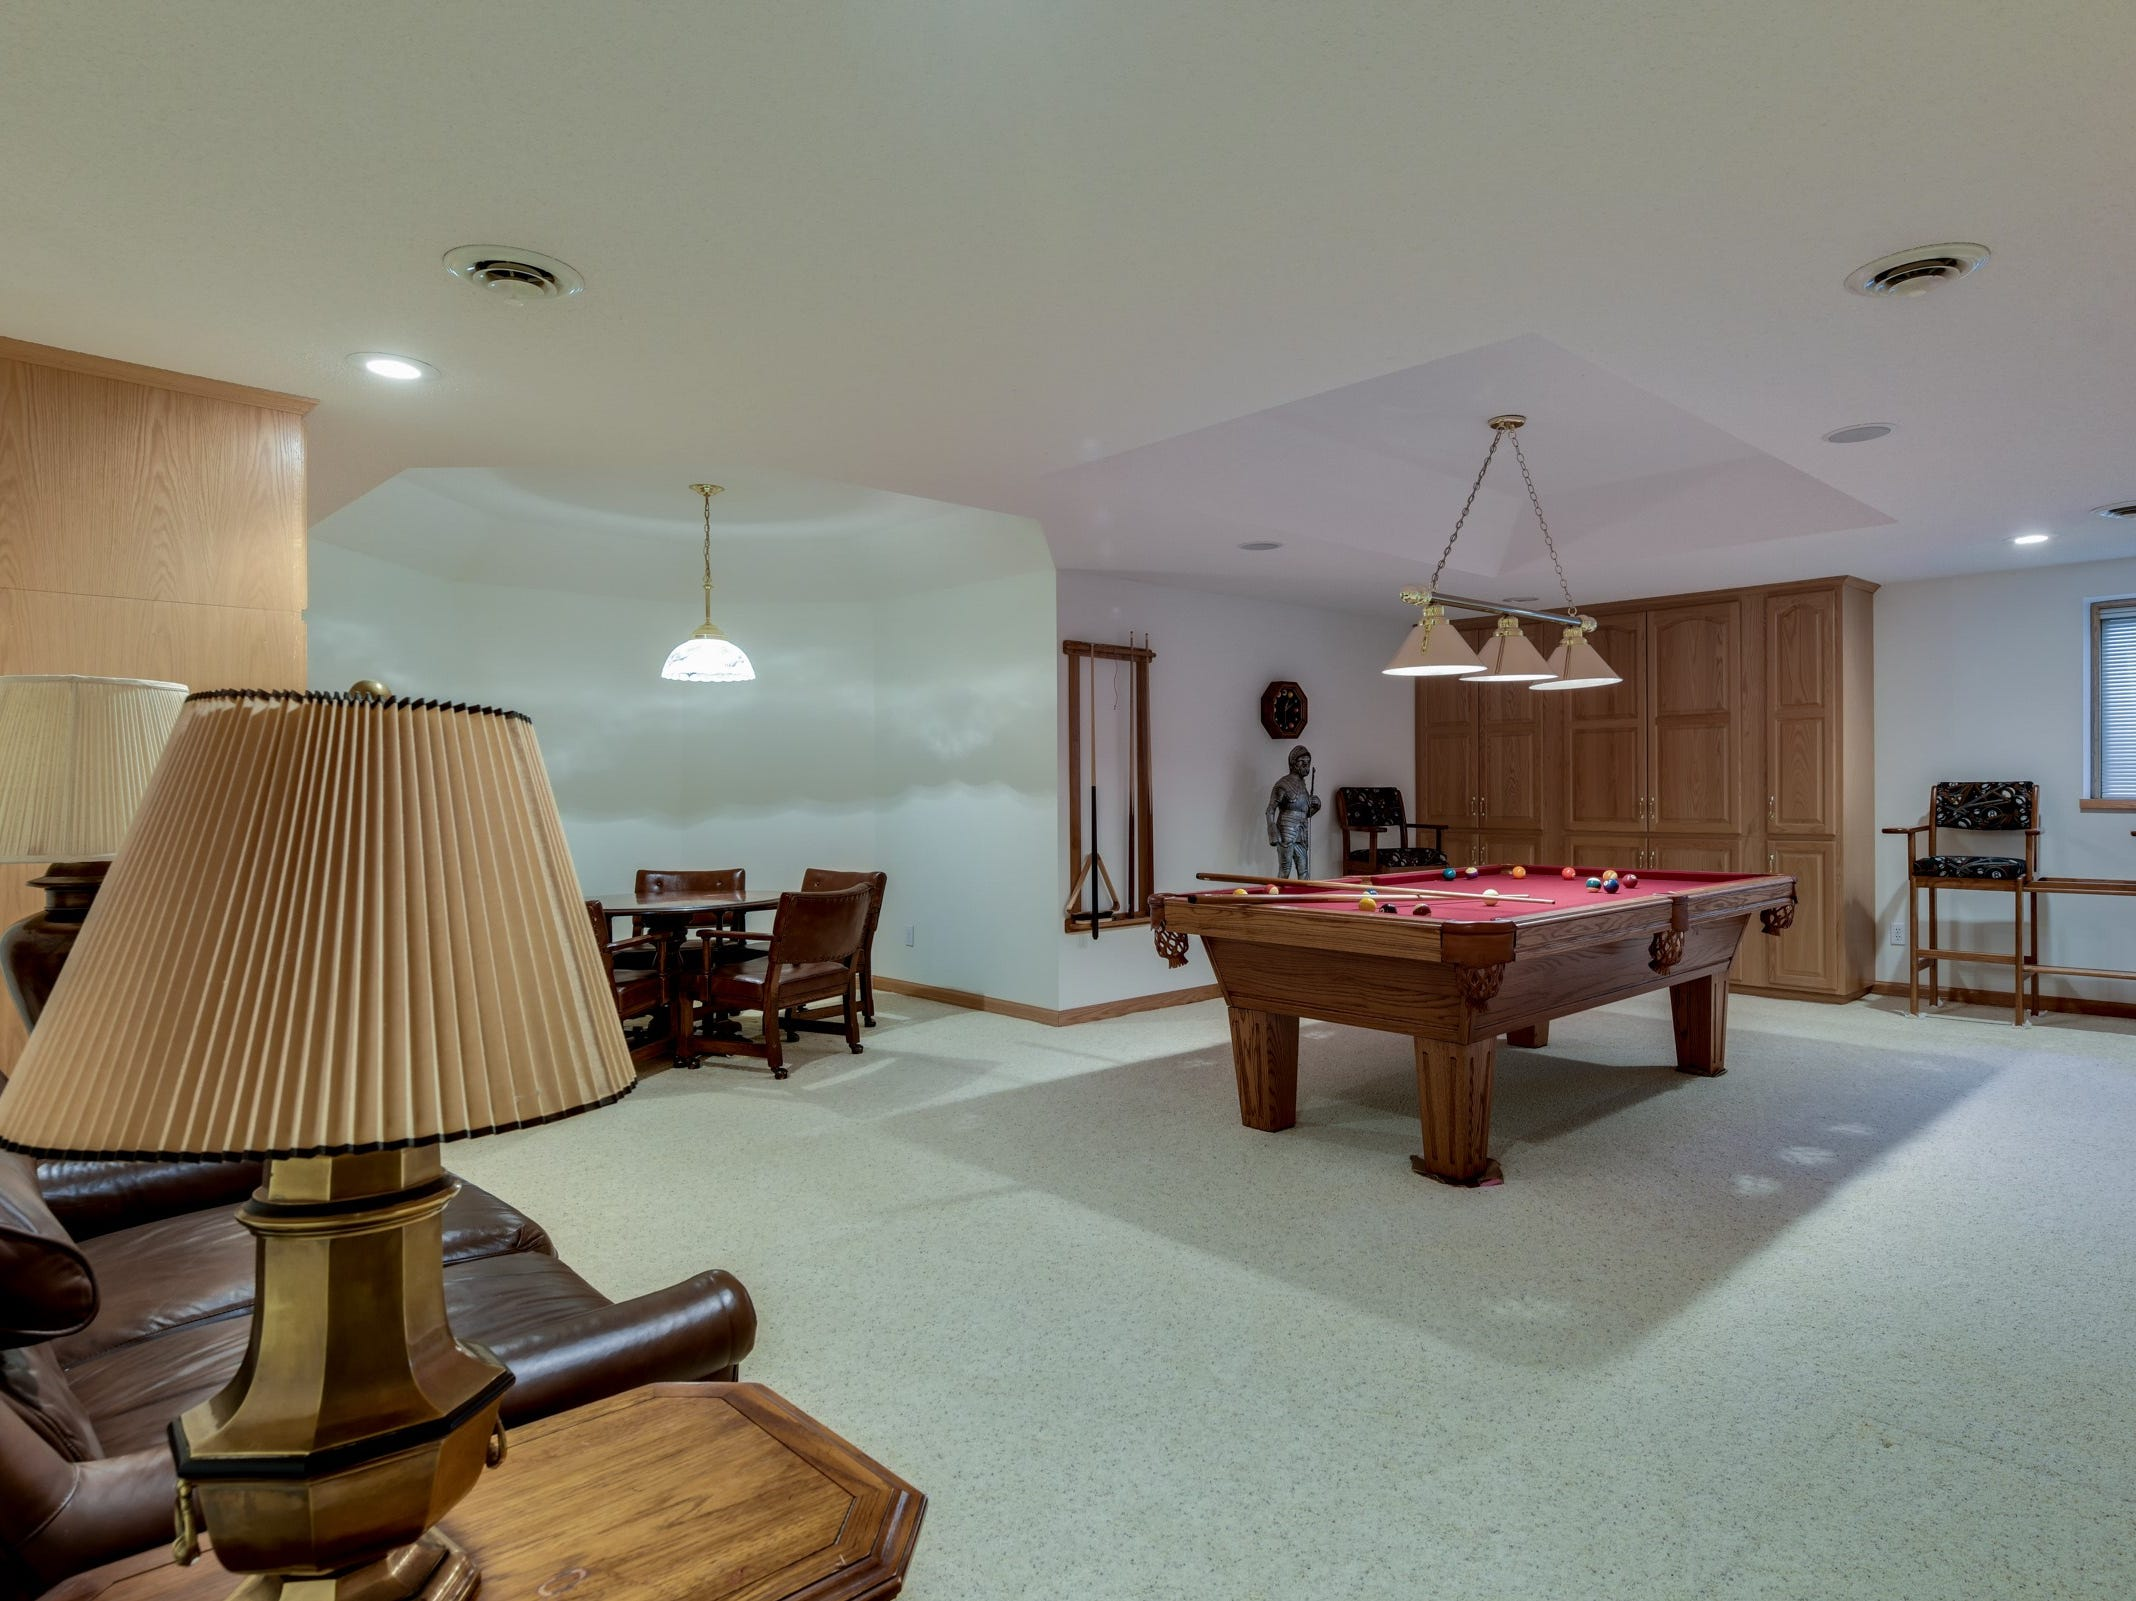 The home also has a game room.